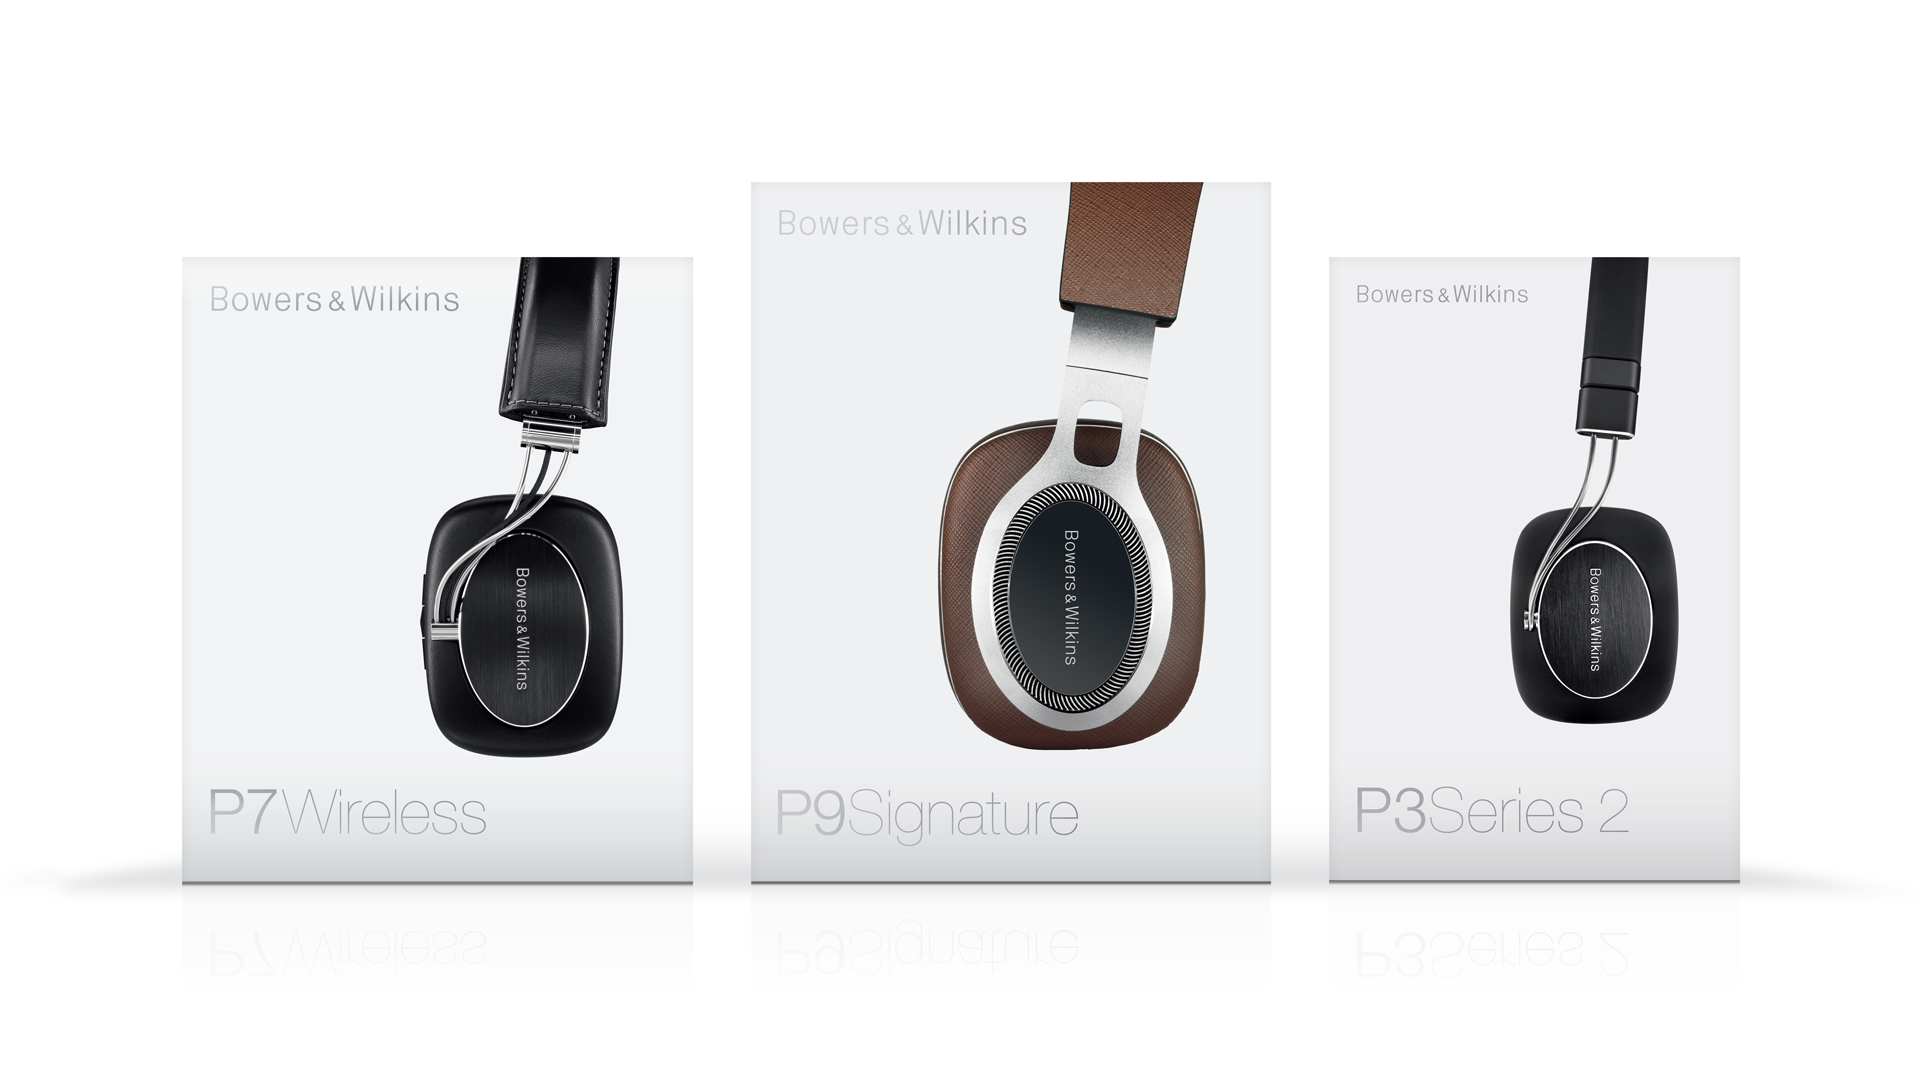 bowers wilkins new media thomas manss company. Black Bedroom Furniture Sets. Home Design Ideas